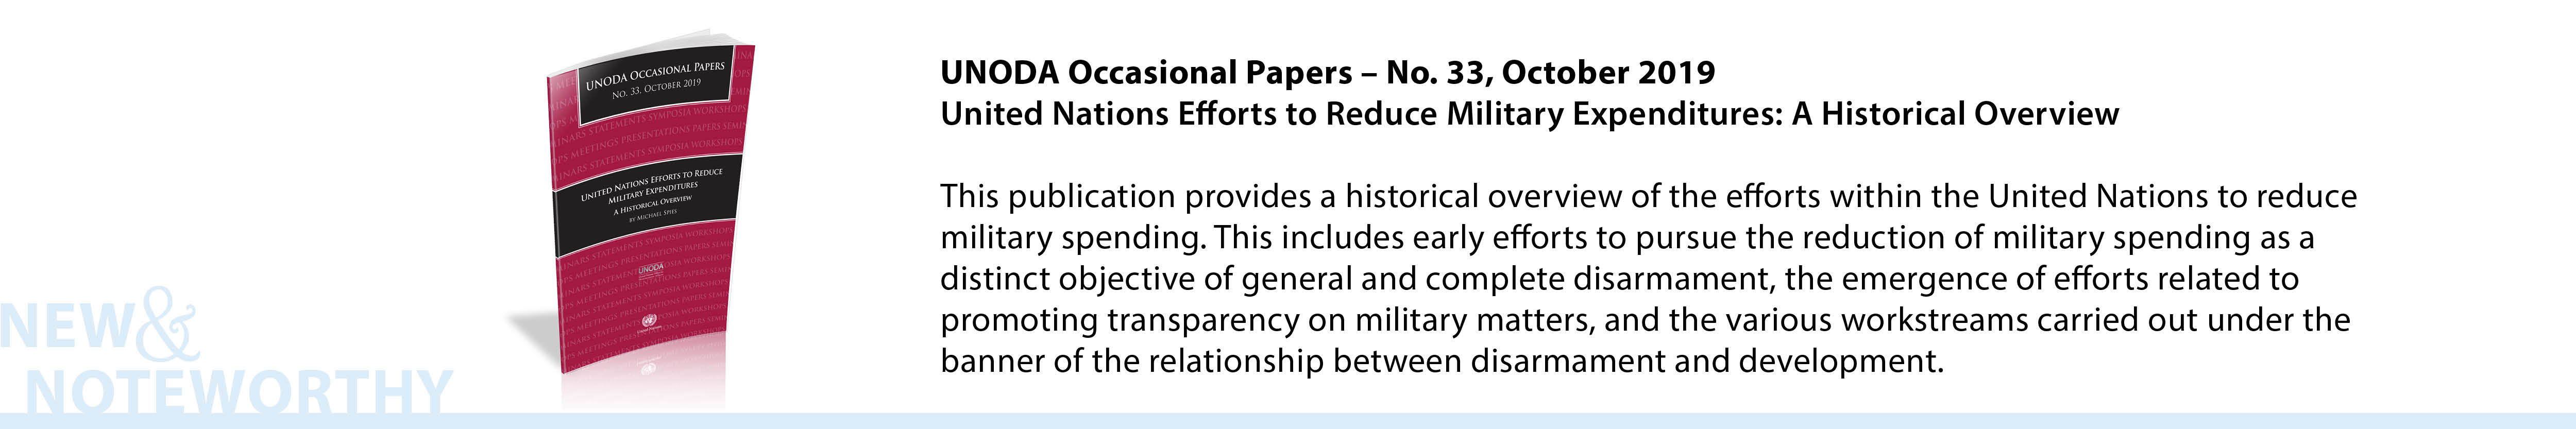 UNODA Occasional Papers – No. 33, October 2019:United Nations Efforts to Reduce Military Expenditures: A Historical Overview -This publication provides a historical overview of the efforts within the United Nations to reduce military spending. This includes early efforts to pursue the reduction of military spending as a distinct objective of general and complete disarmament, the emergence of efforts related to promoting transparency on military matters, and the various workstreams carried out under the banner of the relationship between disarmament and development.